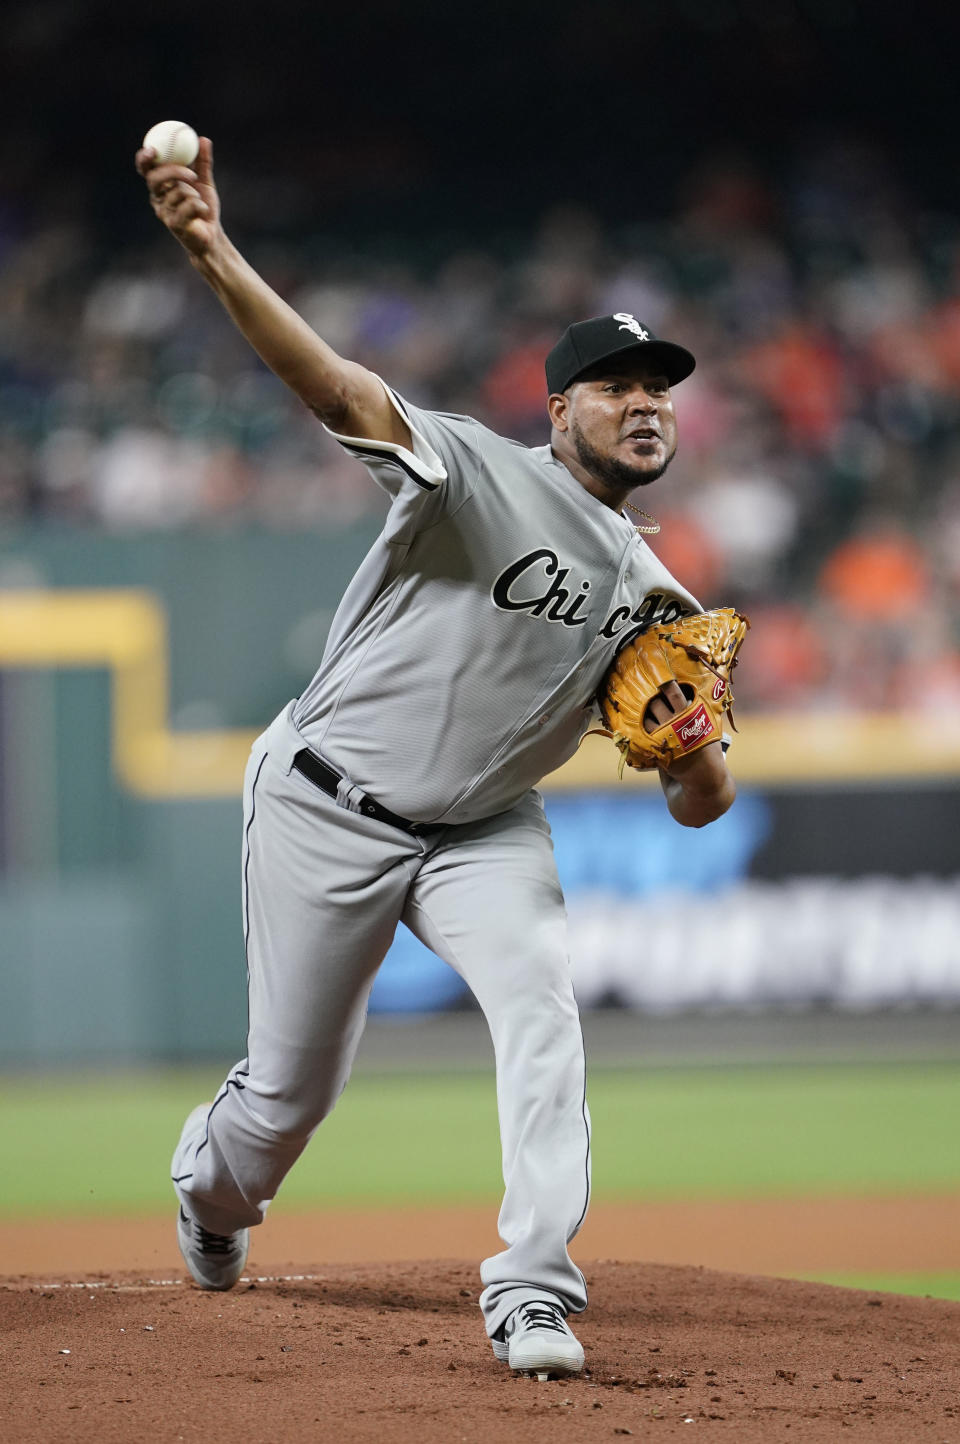 Chicago White Sox starting pitcher Ivan Nova throws during the first inning of the team's baseball game against the Houston Astros Wednesday, May 22, 2019, in Houston. (AP Photo/David J. Phillip)